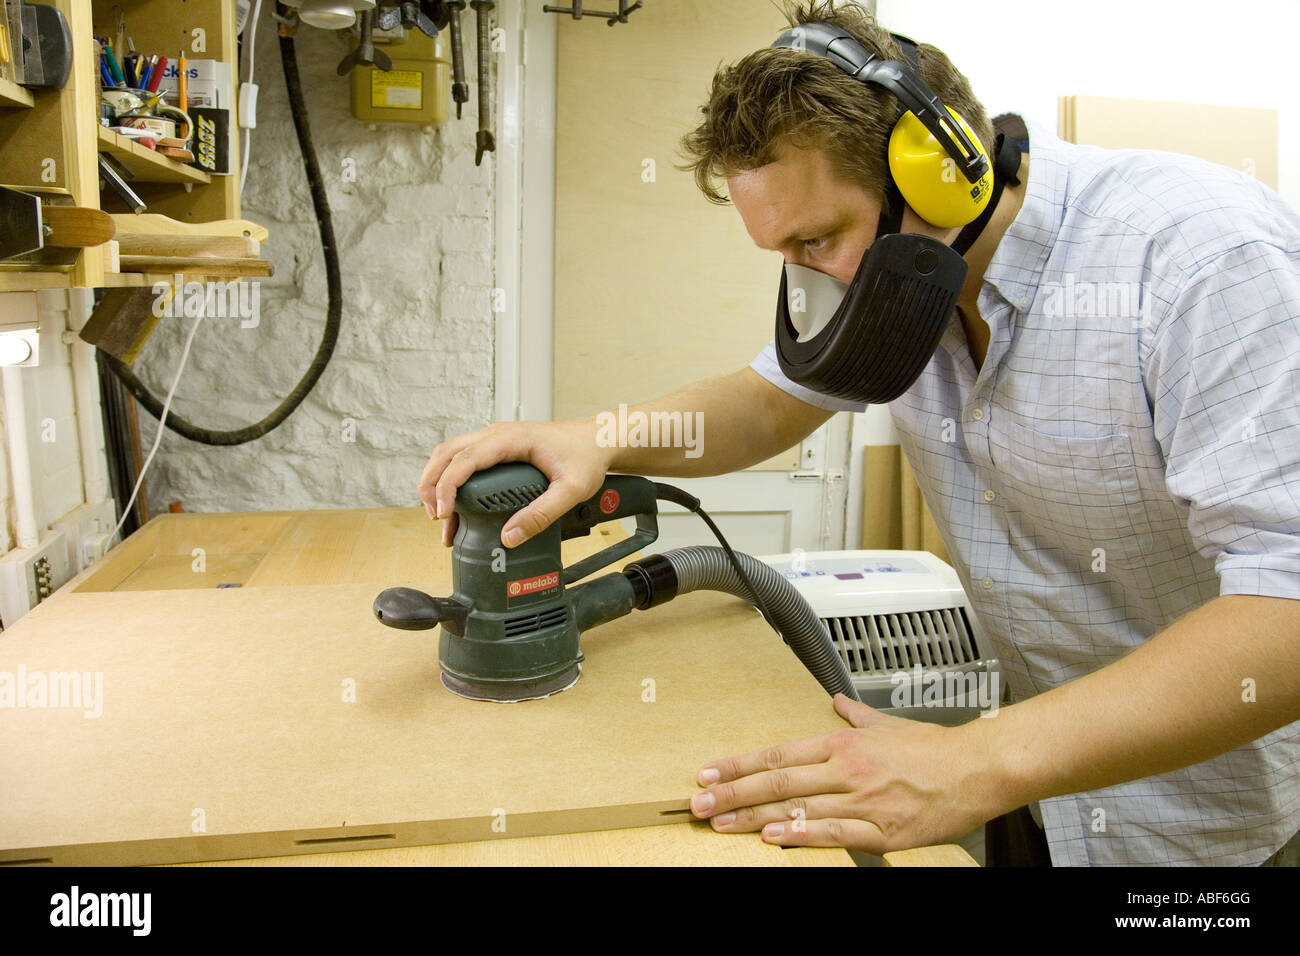 A craftsman uses a random orbit sander with dust extraction to ...